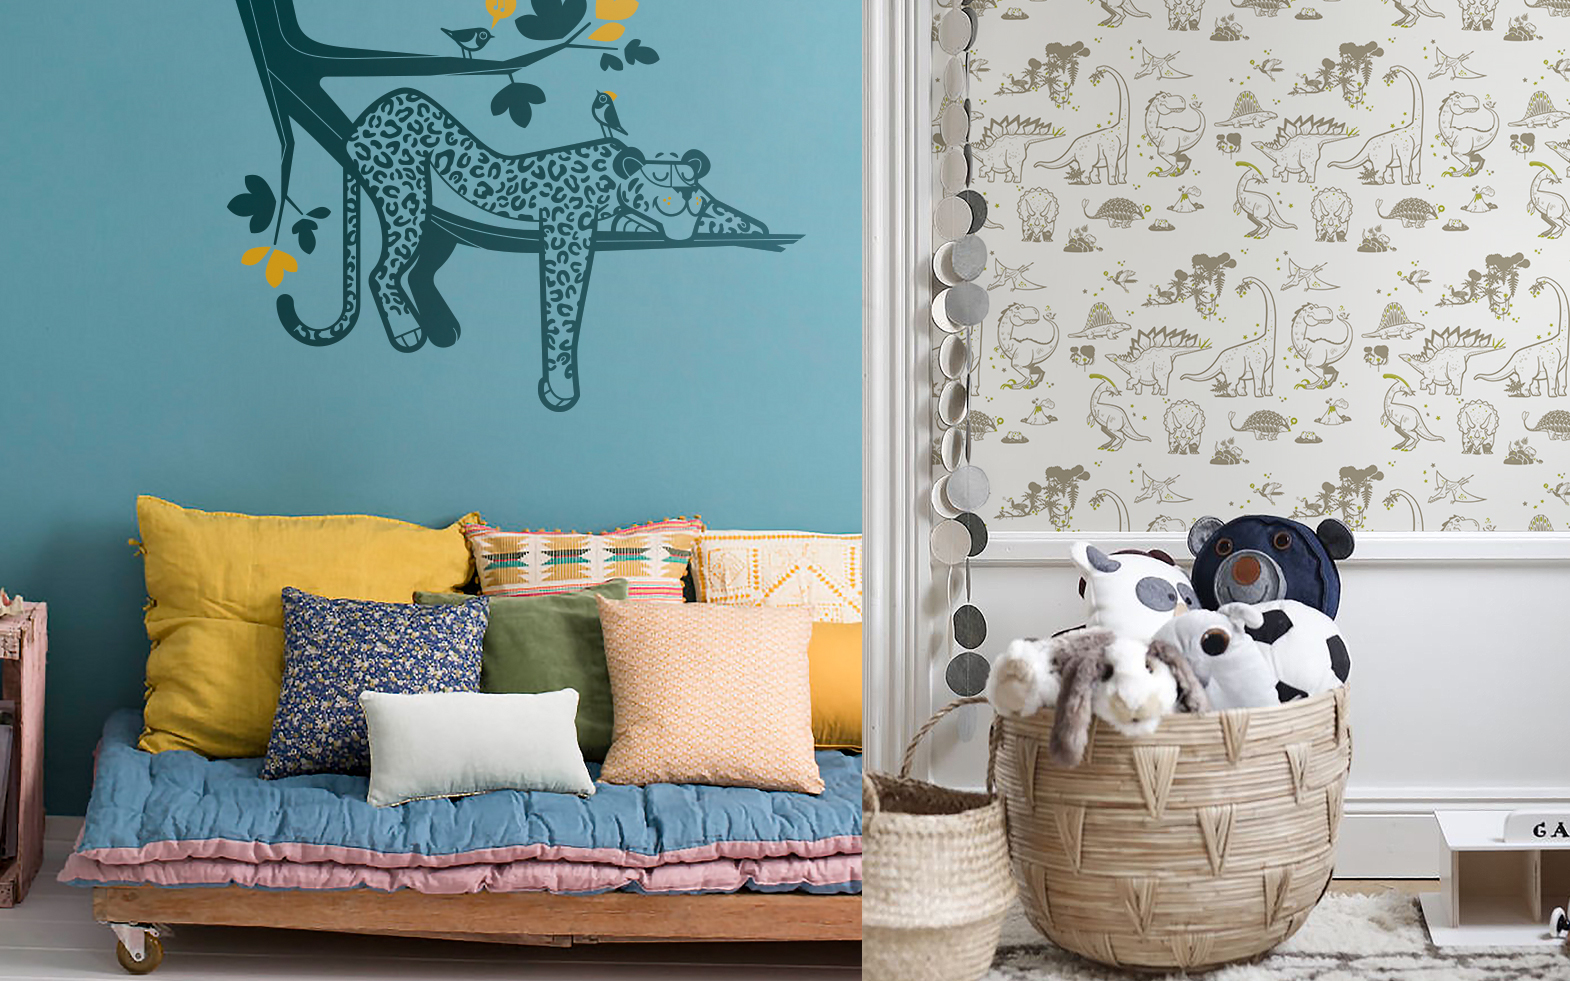 Leopard wall stickers and dinosaur wallpaper by E-Glue design